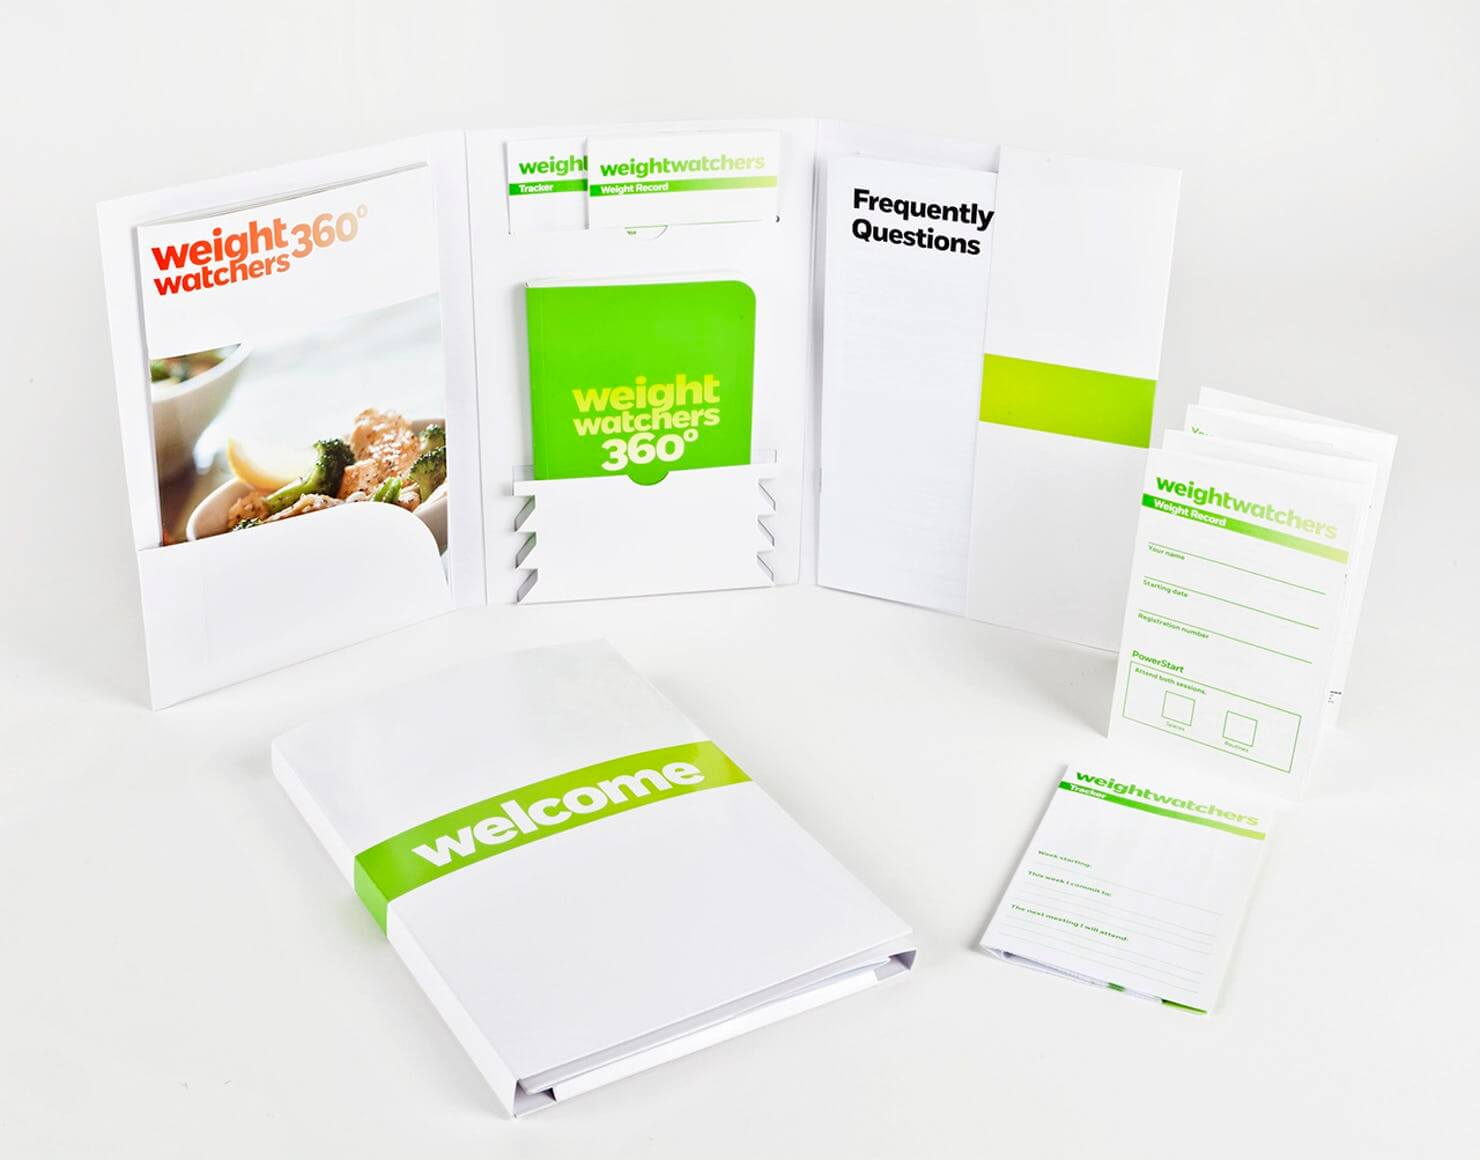 New Weight Watchers Branding